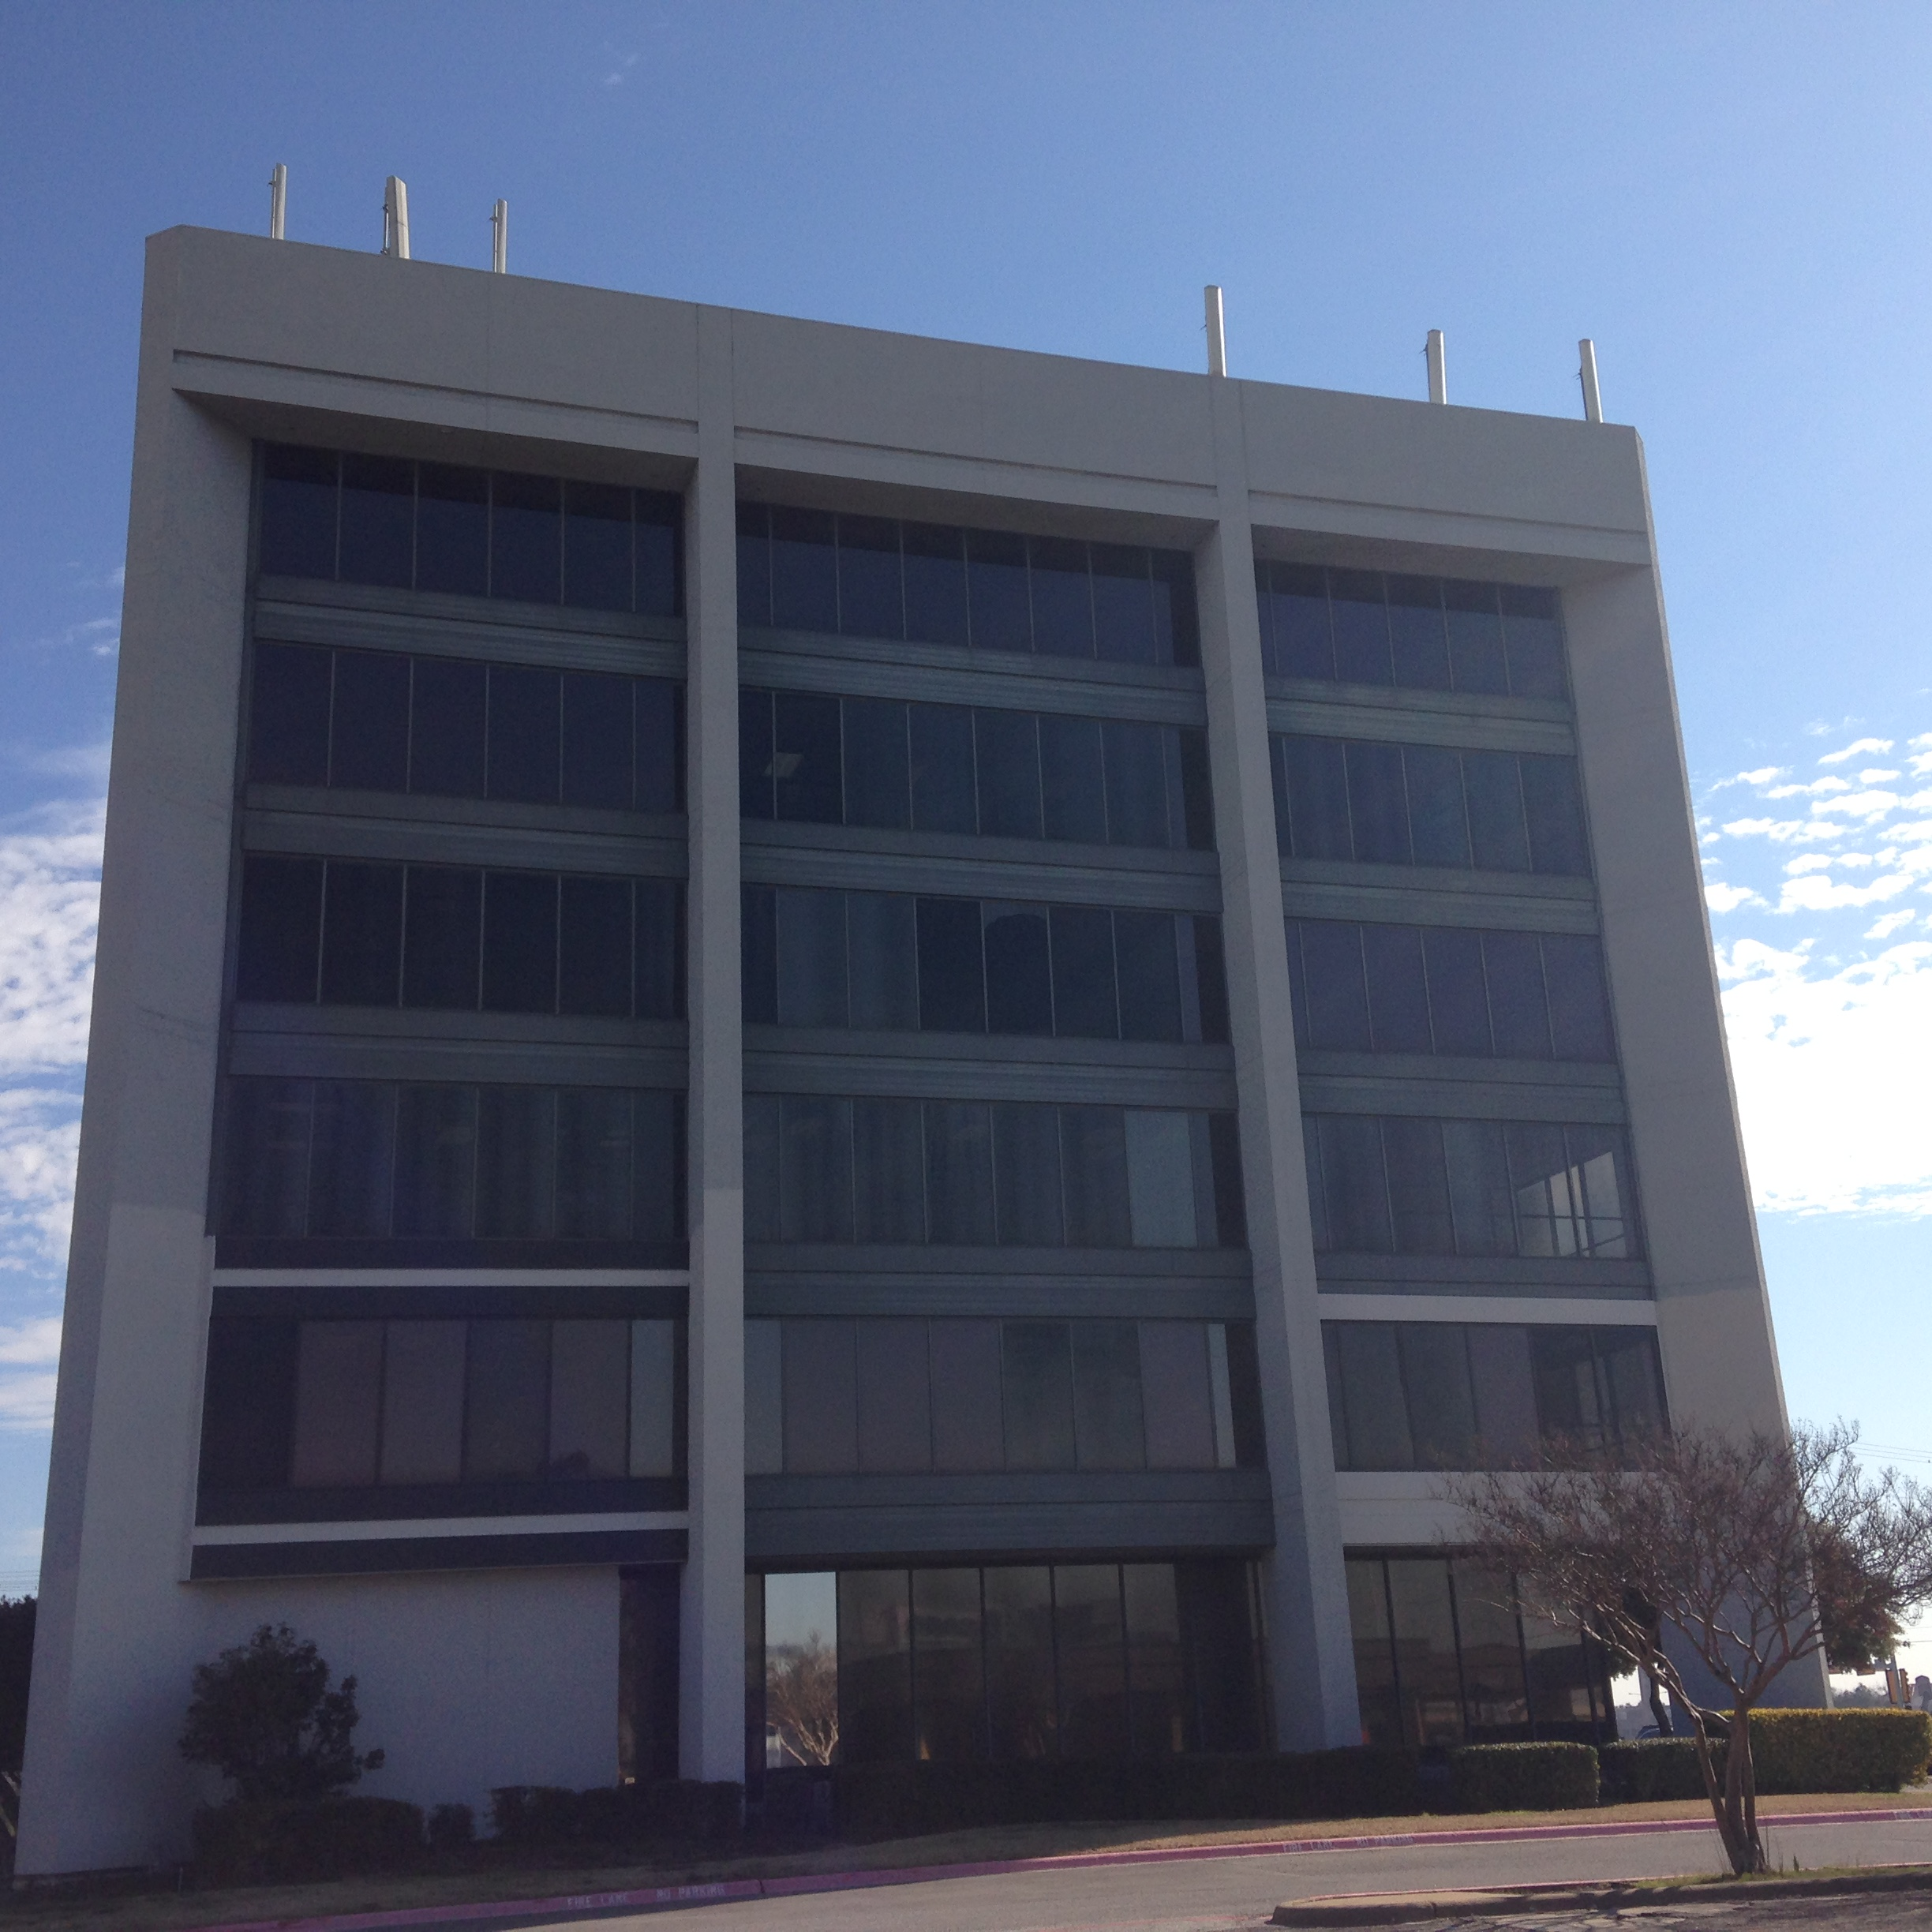 Commercial Office Window Tinting Installation For Midway Tower In Dallas Tx Reduces Glare